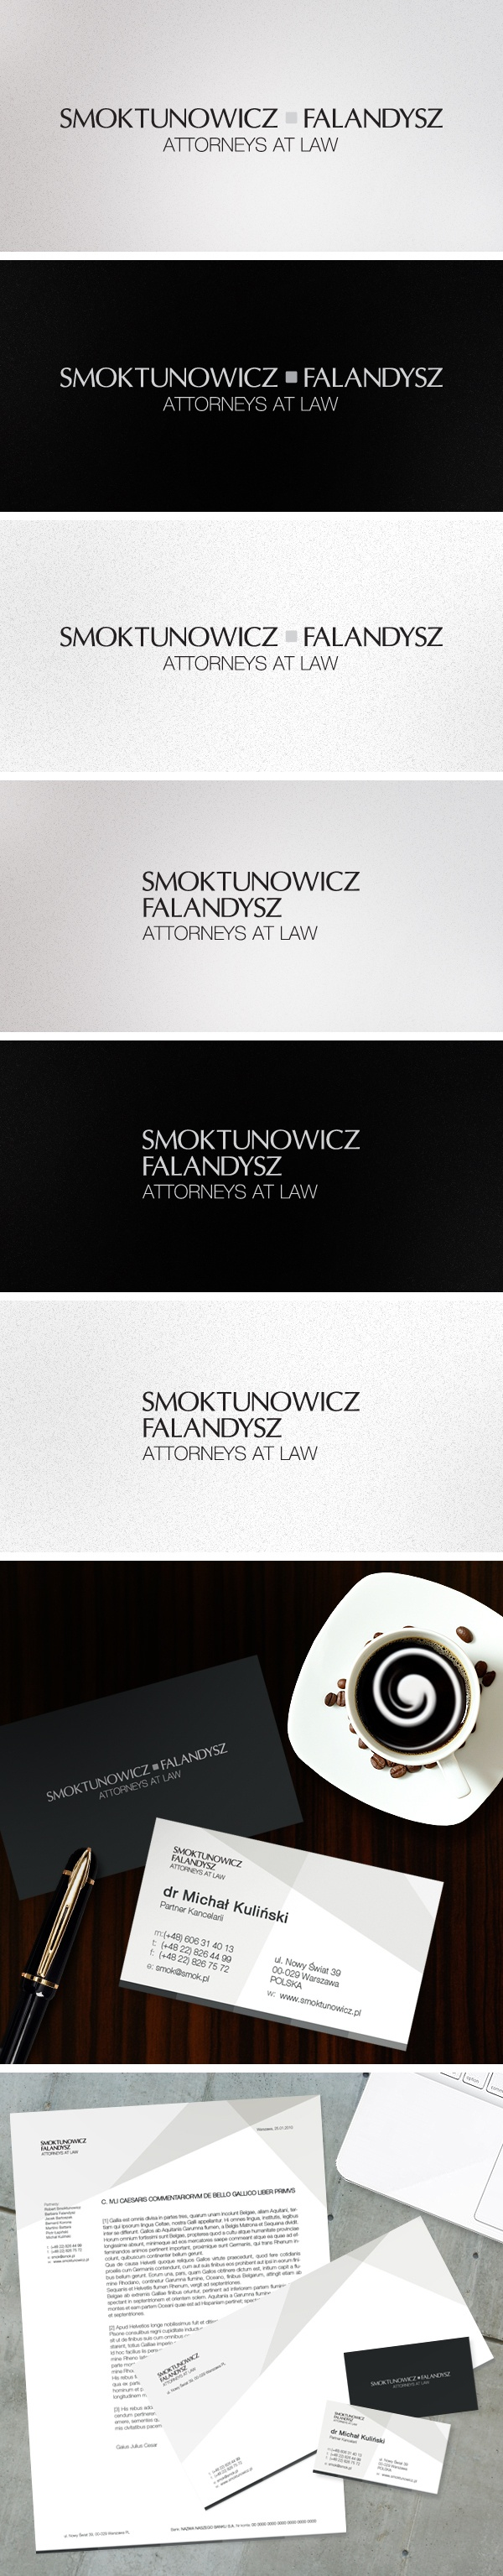 Smoktunowicz Attorneys At Law Branding